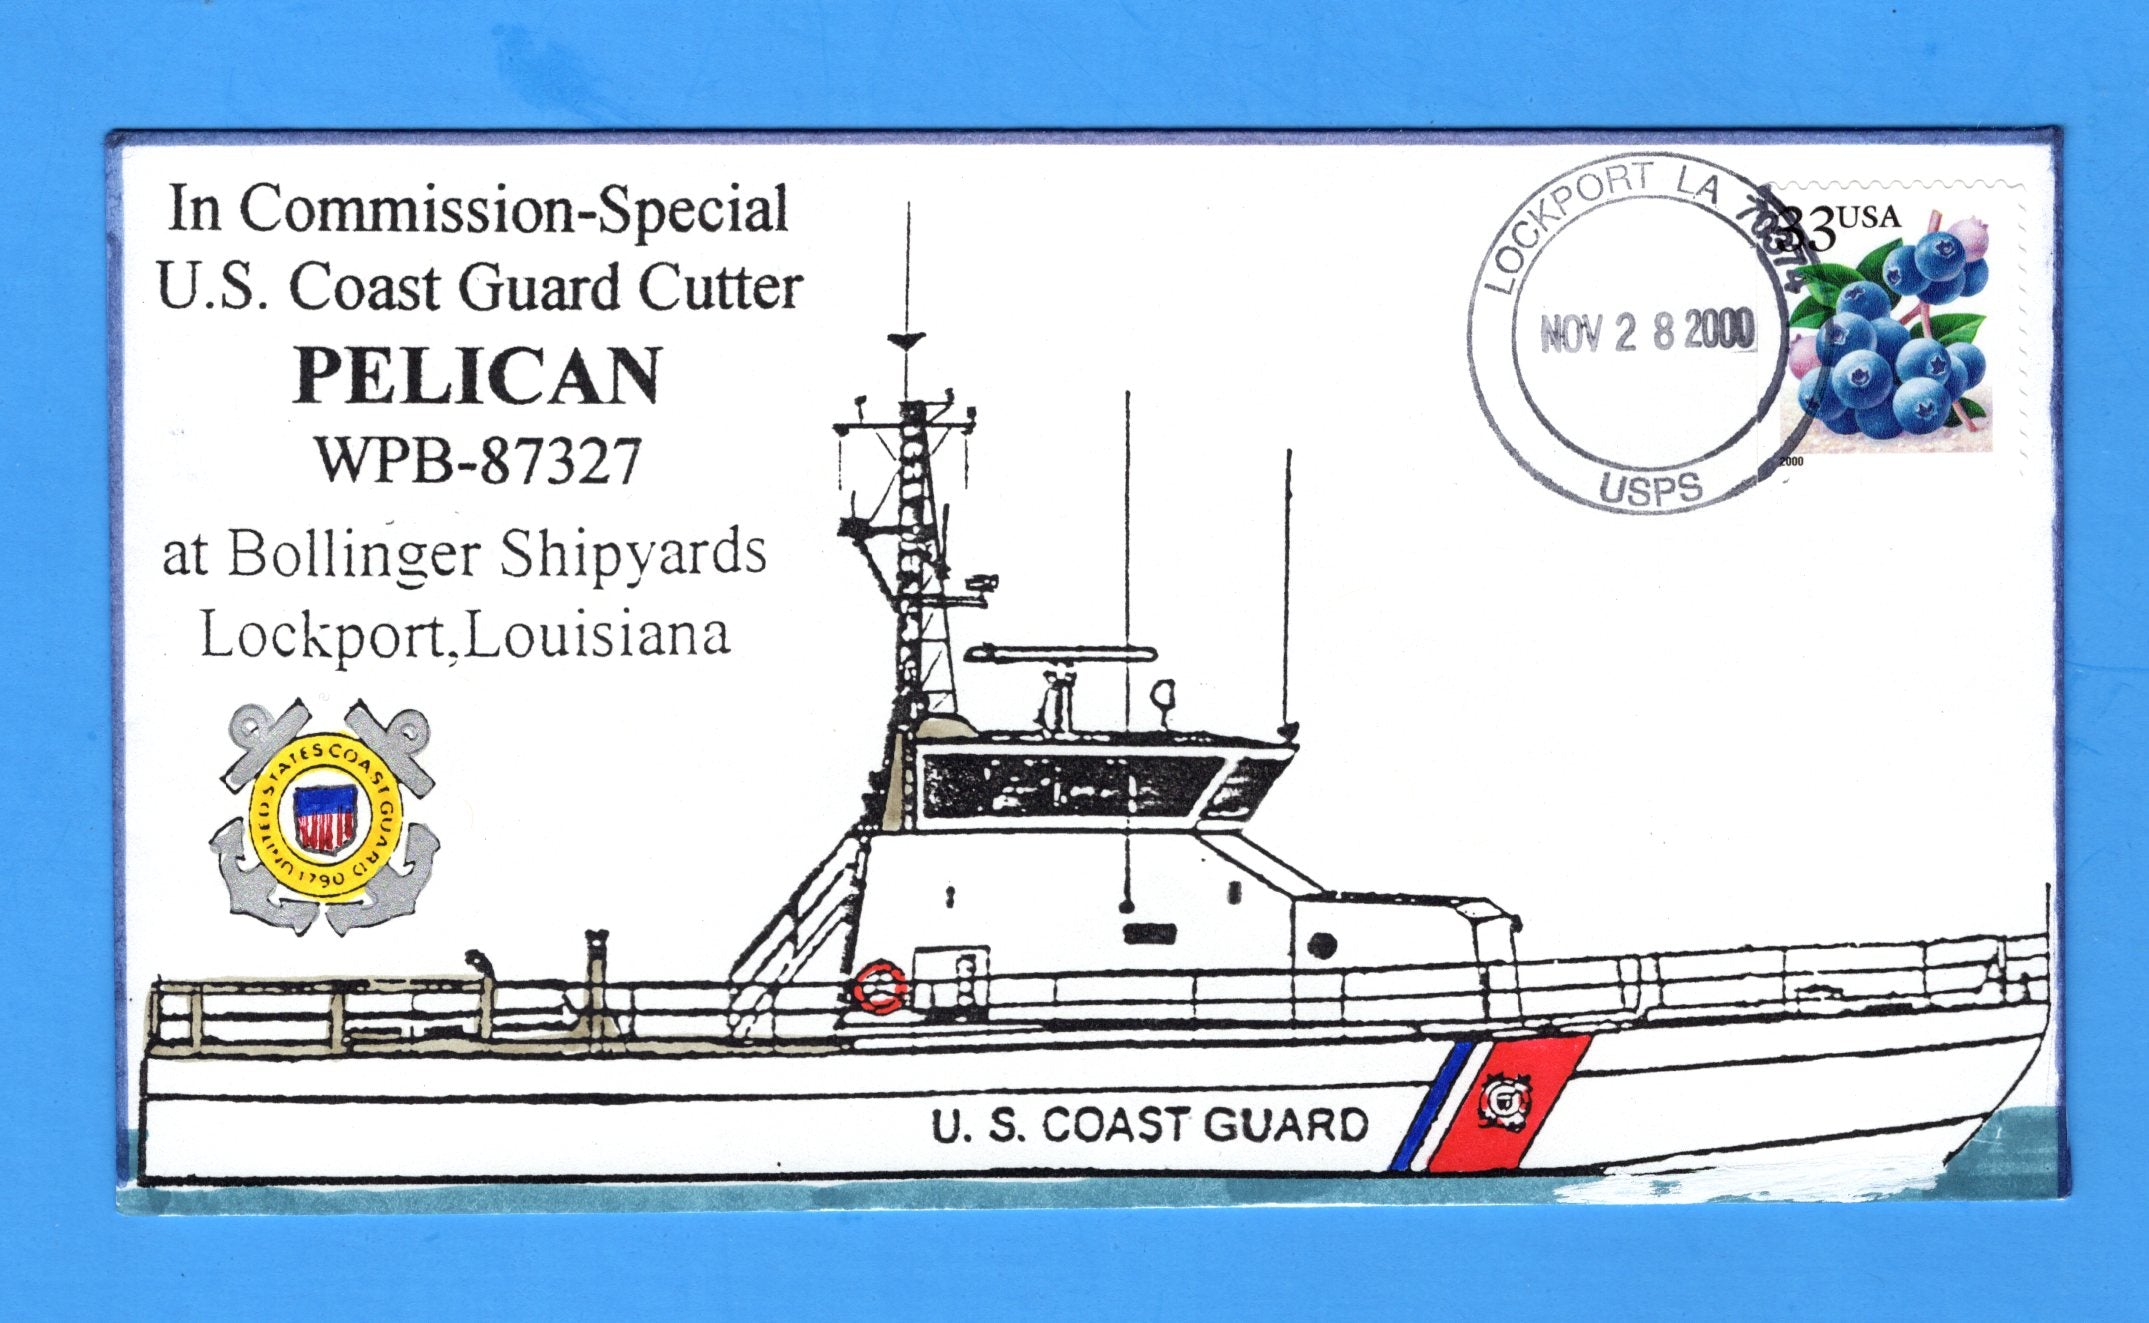 USCGC Blacktip WPB-87327 in Commission, Special November 28, 2000 - Hand Drawn and Colored Cachet by Bill Everett